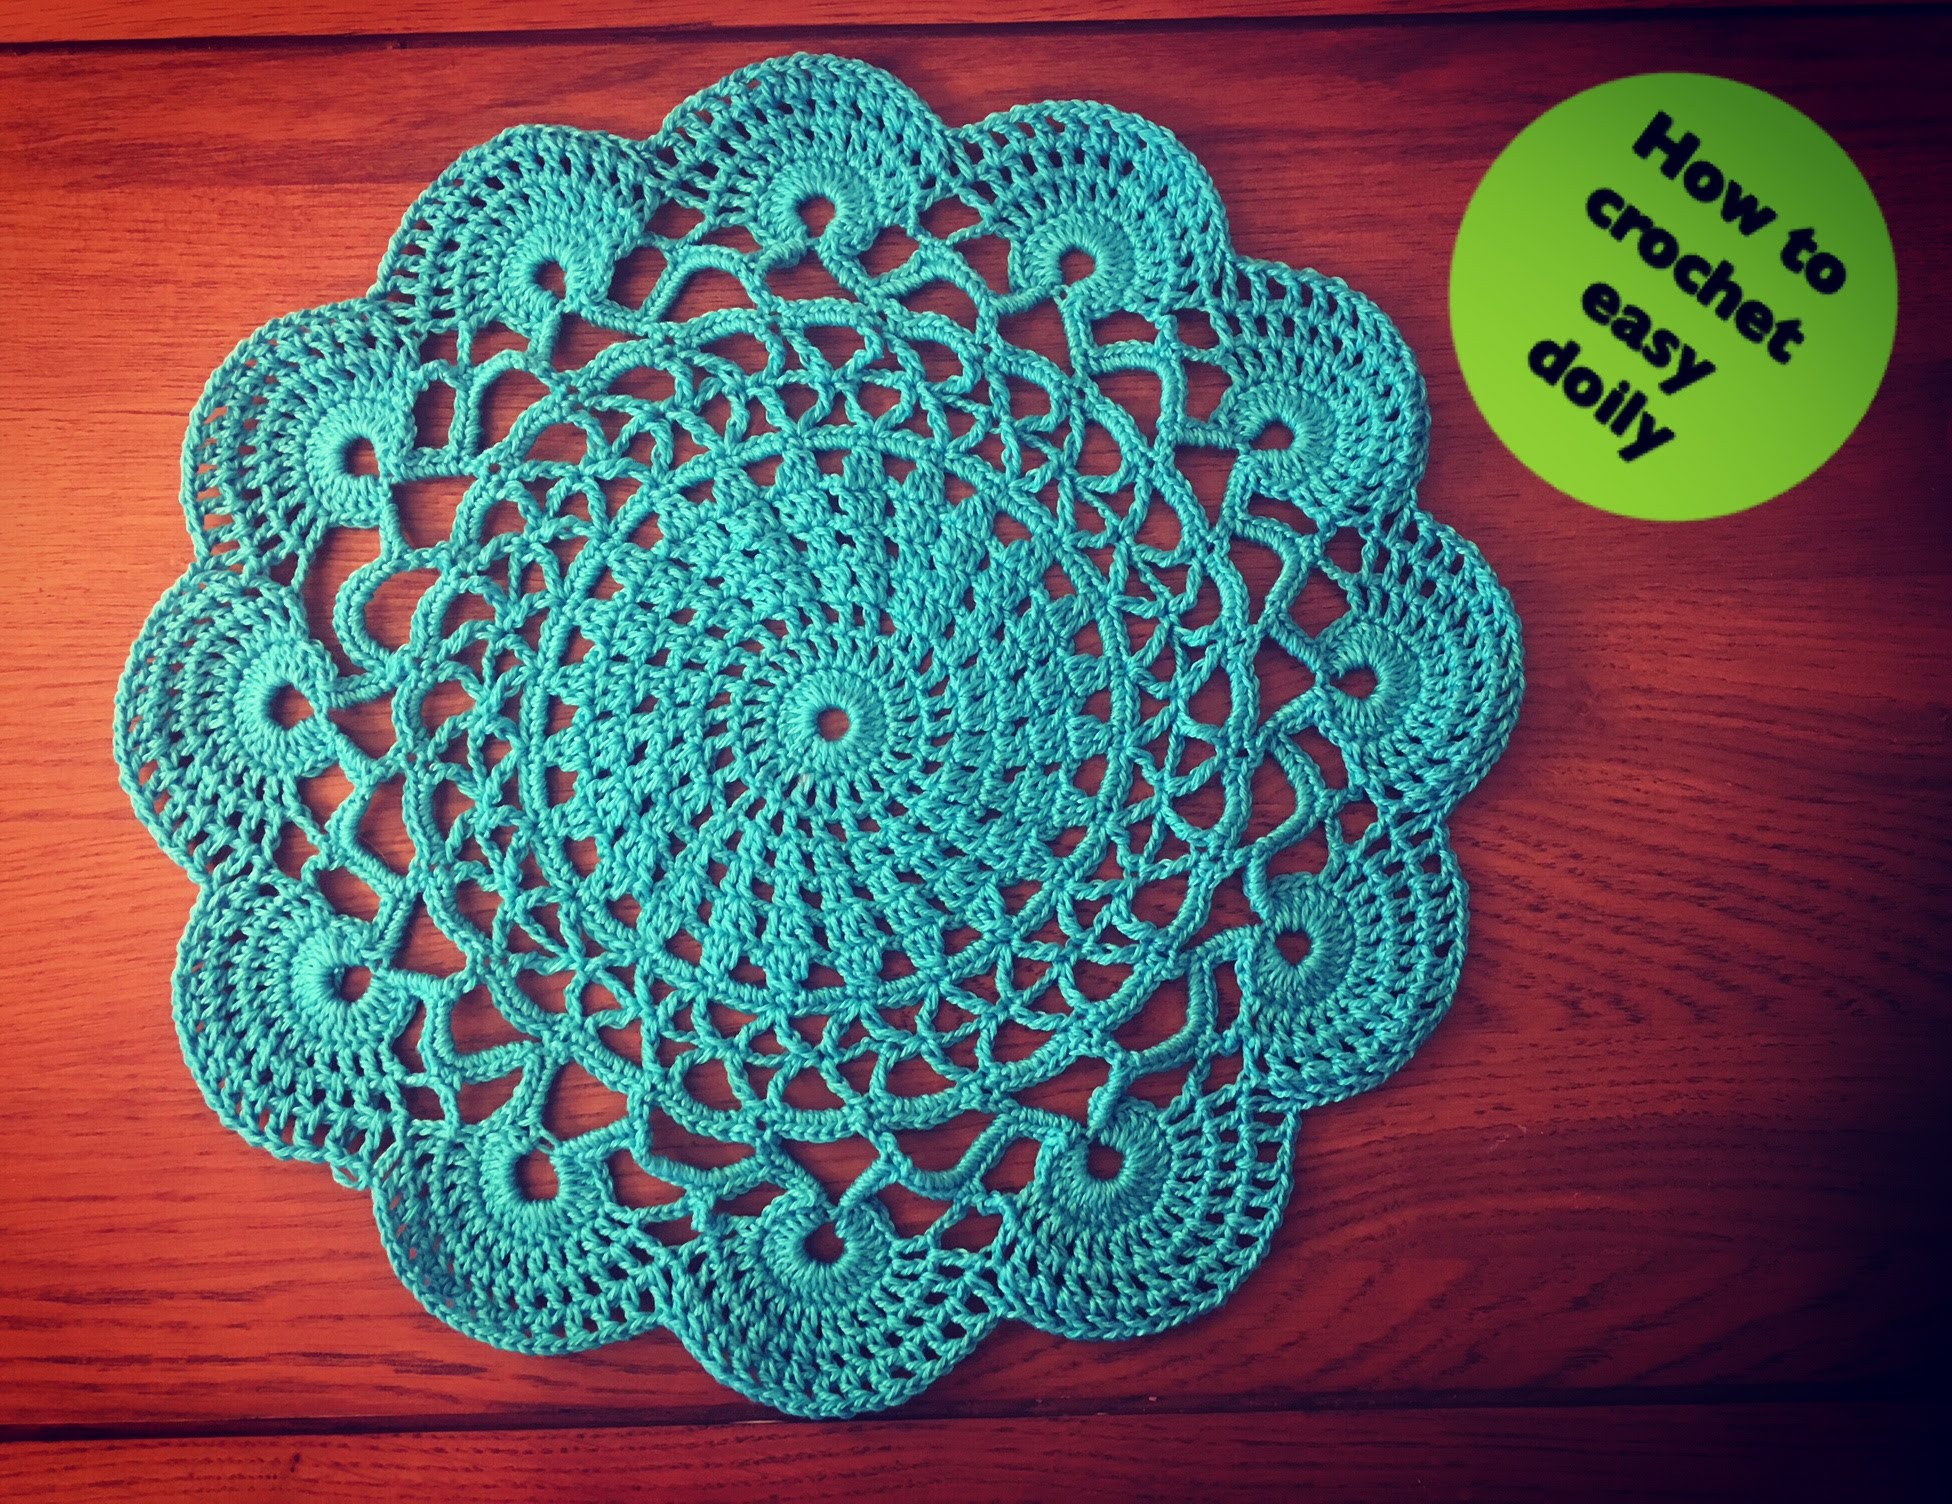 How To Crochet Easy how to crochet easy doily - youtube lggodle